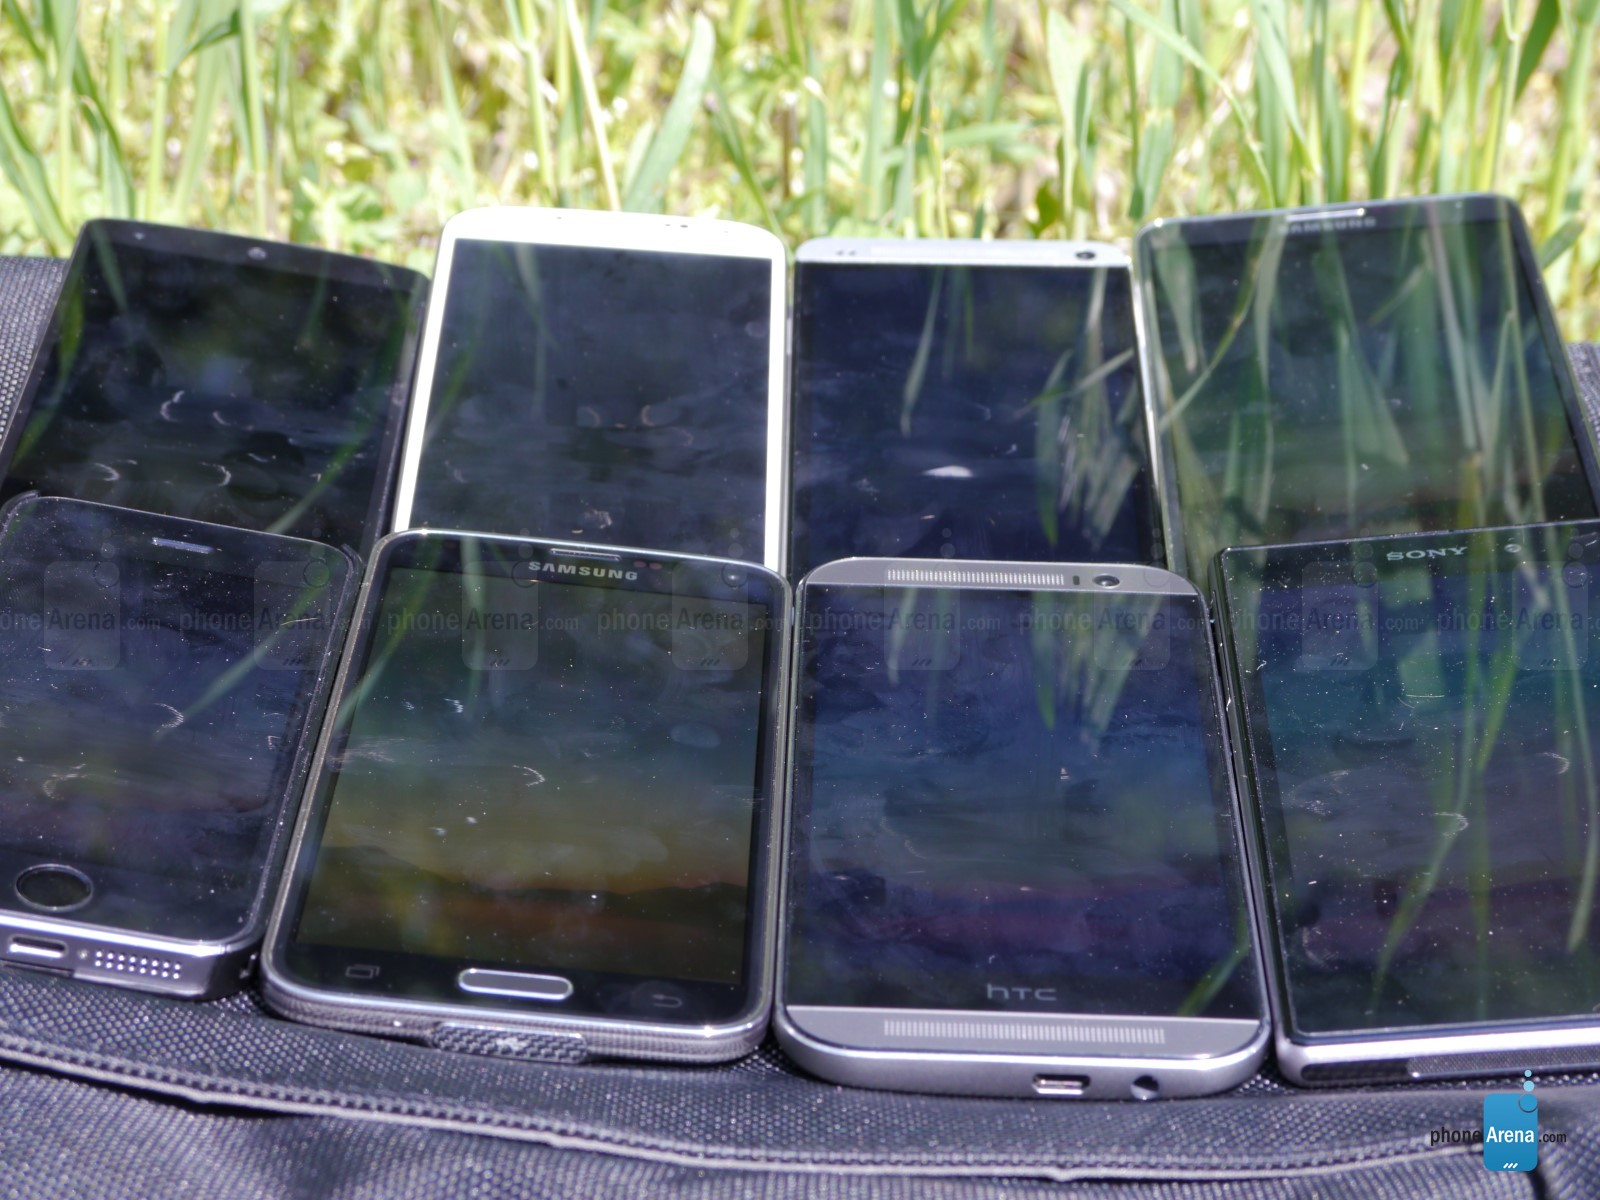 Display-outdoor-visibility-for-top-smartphones (1)